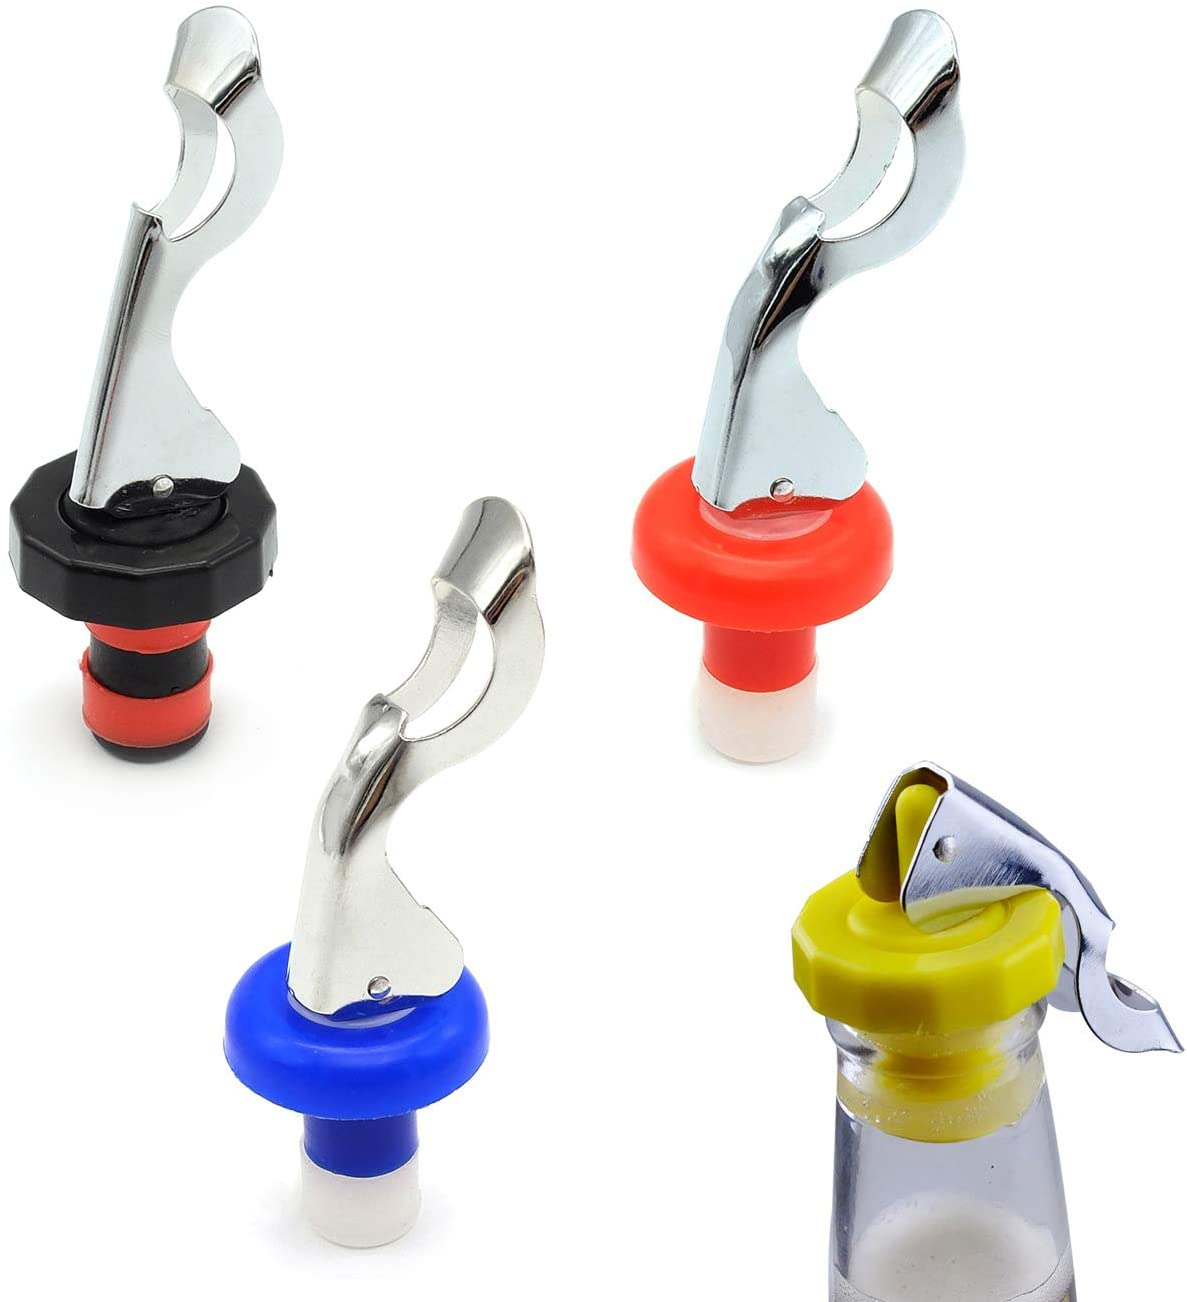 Wine Stoppers, Food-safe Silicone Bottle Stoppers, Expanding Manual Beverage Stopper, Reusable Wine Bottle Corks, Creates Airtight Seal, Assorted Colors 4 Pack (Assorted)